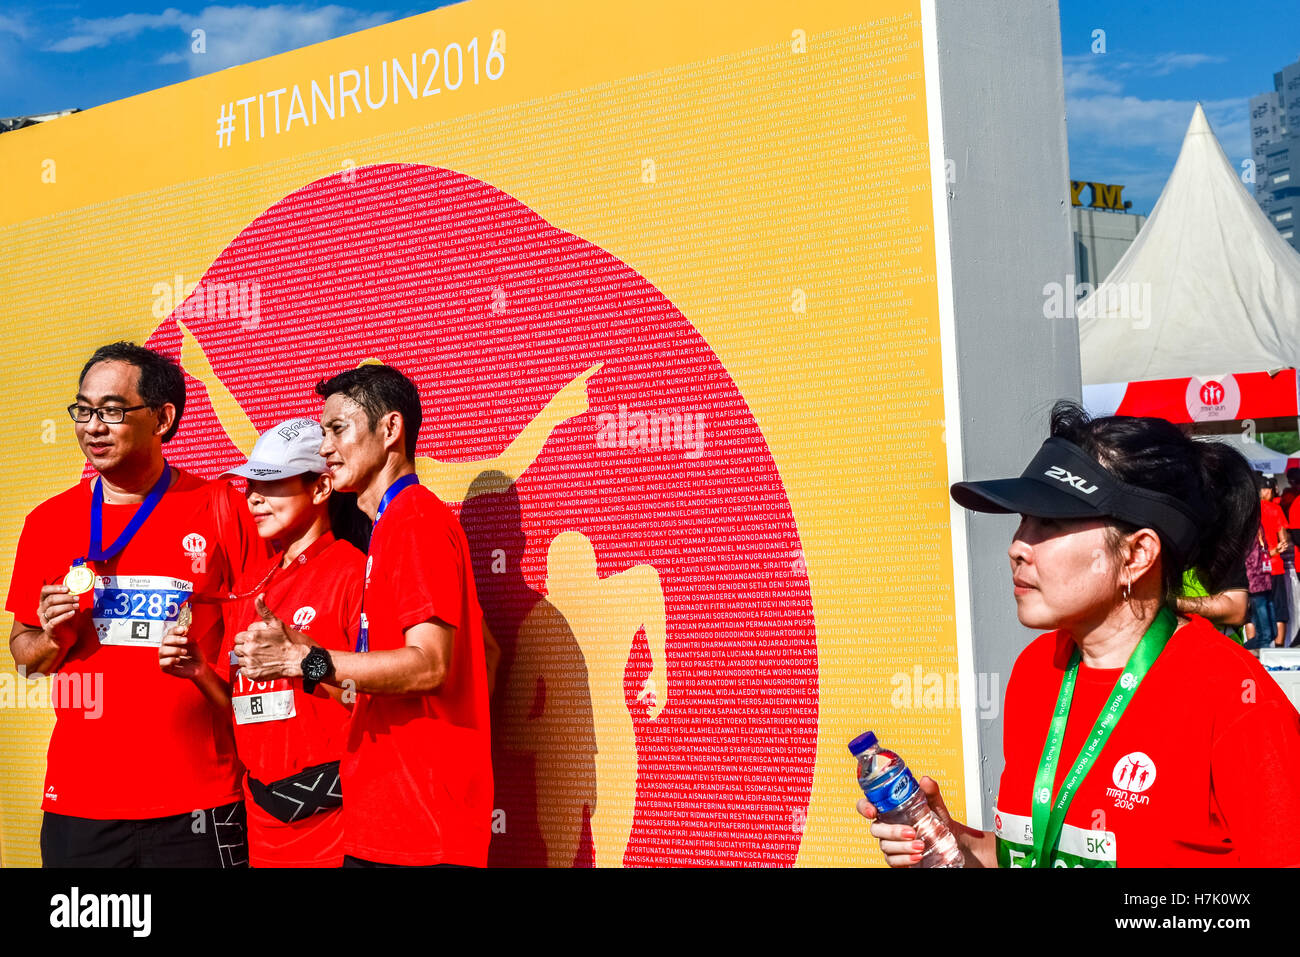 Finishers having photo session with podium backdrop after a race entitled Titan Run in Tangerang, Indonesia. - Stock Image